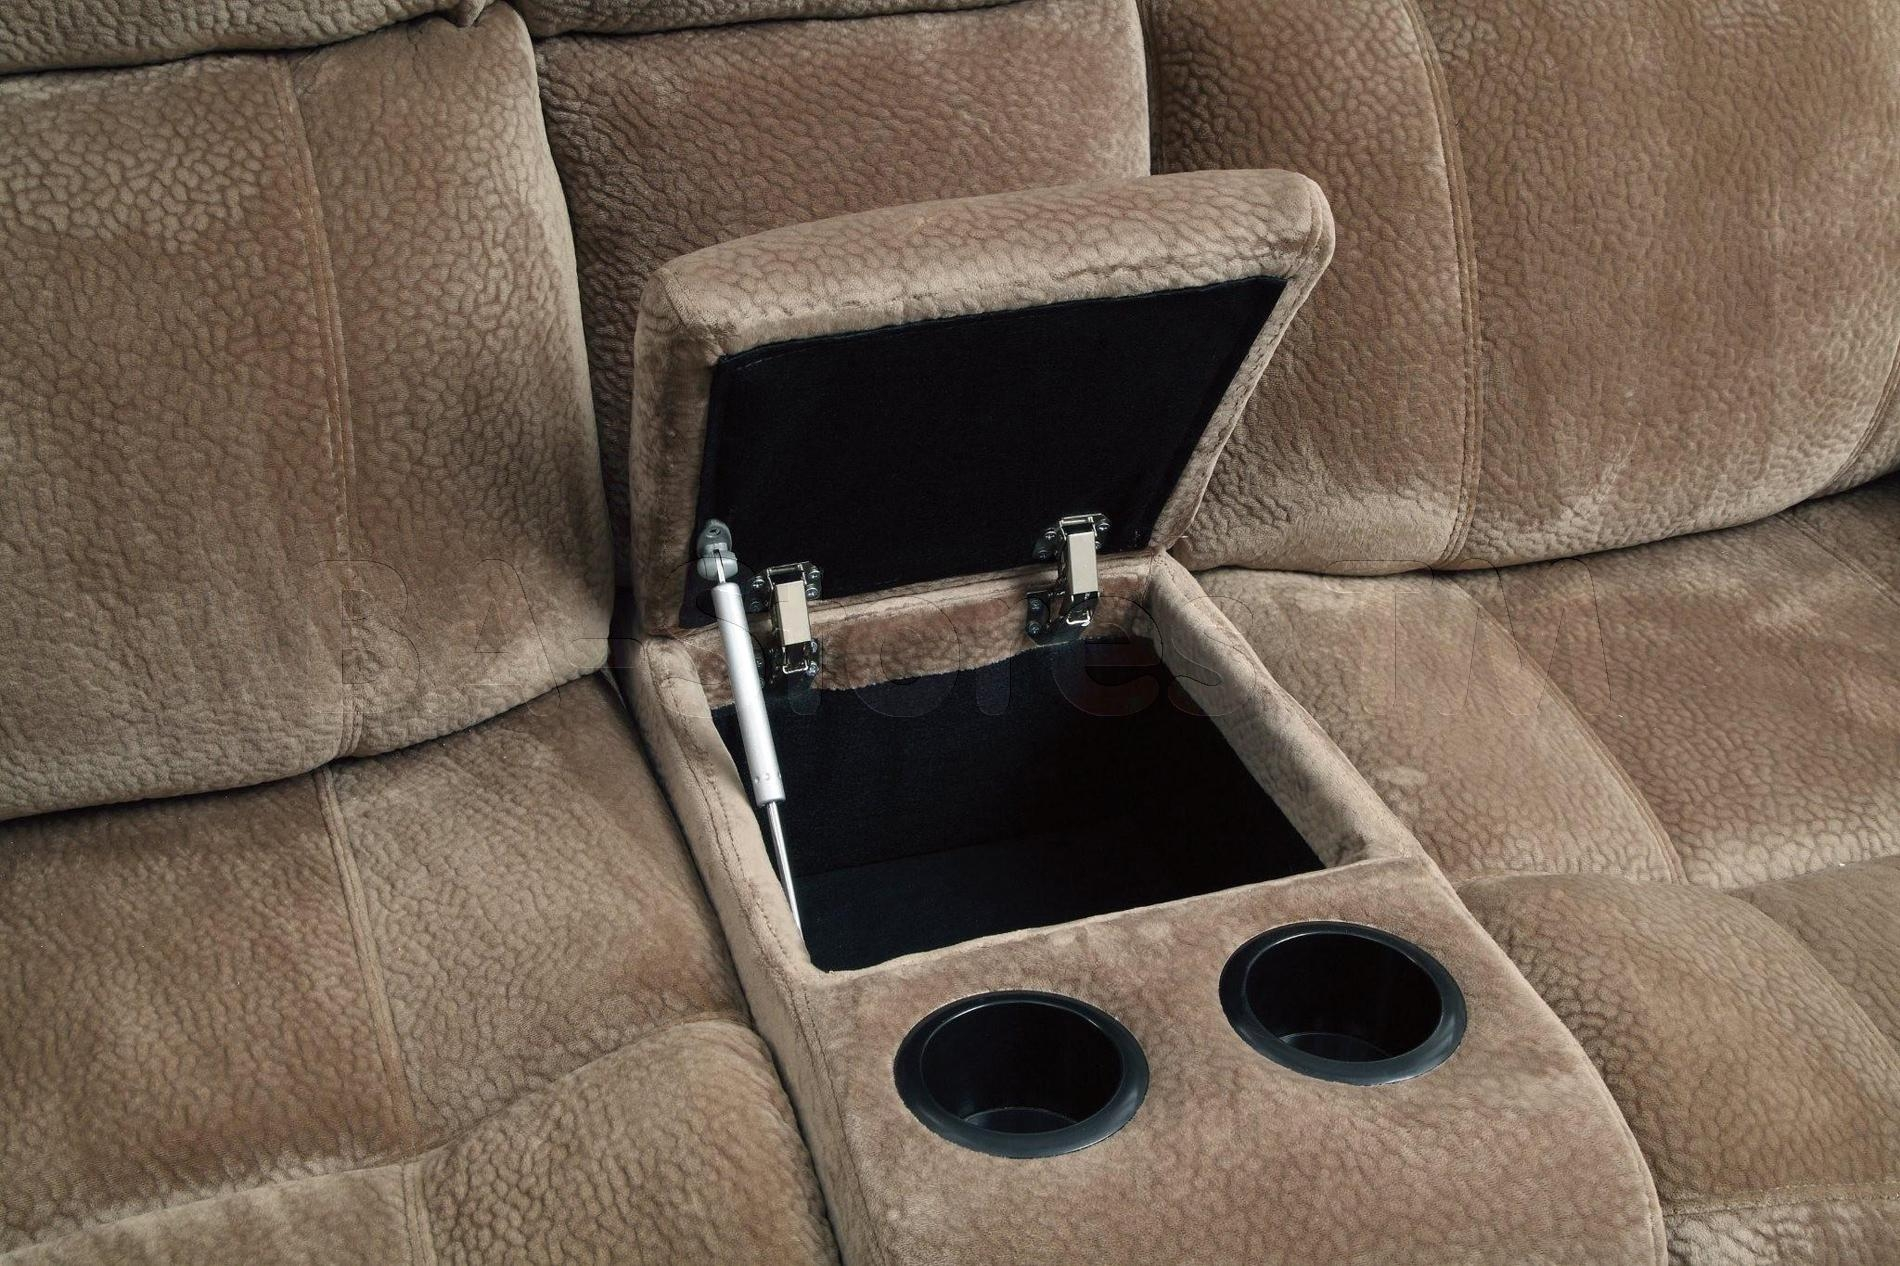 Sofa Recliners With Cup Holders Within Sofas With Cup Holders (View 15 of 20)